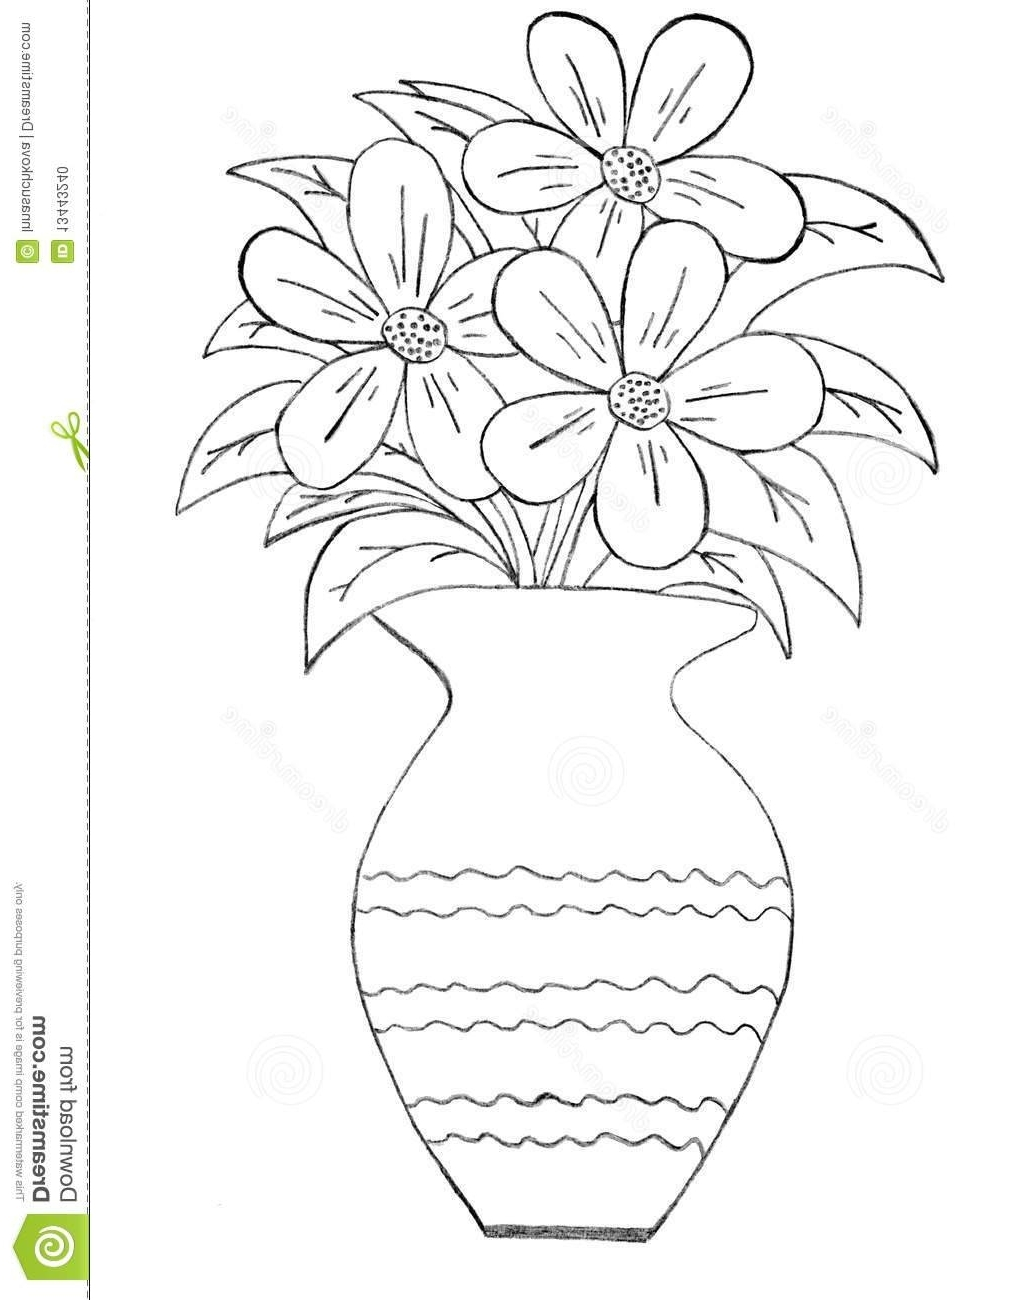 Flowers Images Drawing At Getdrawings Free For Personal Use